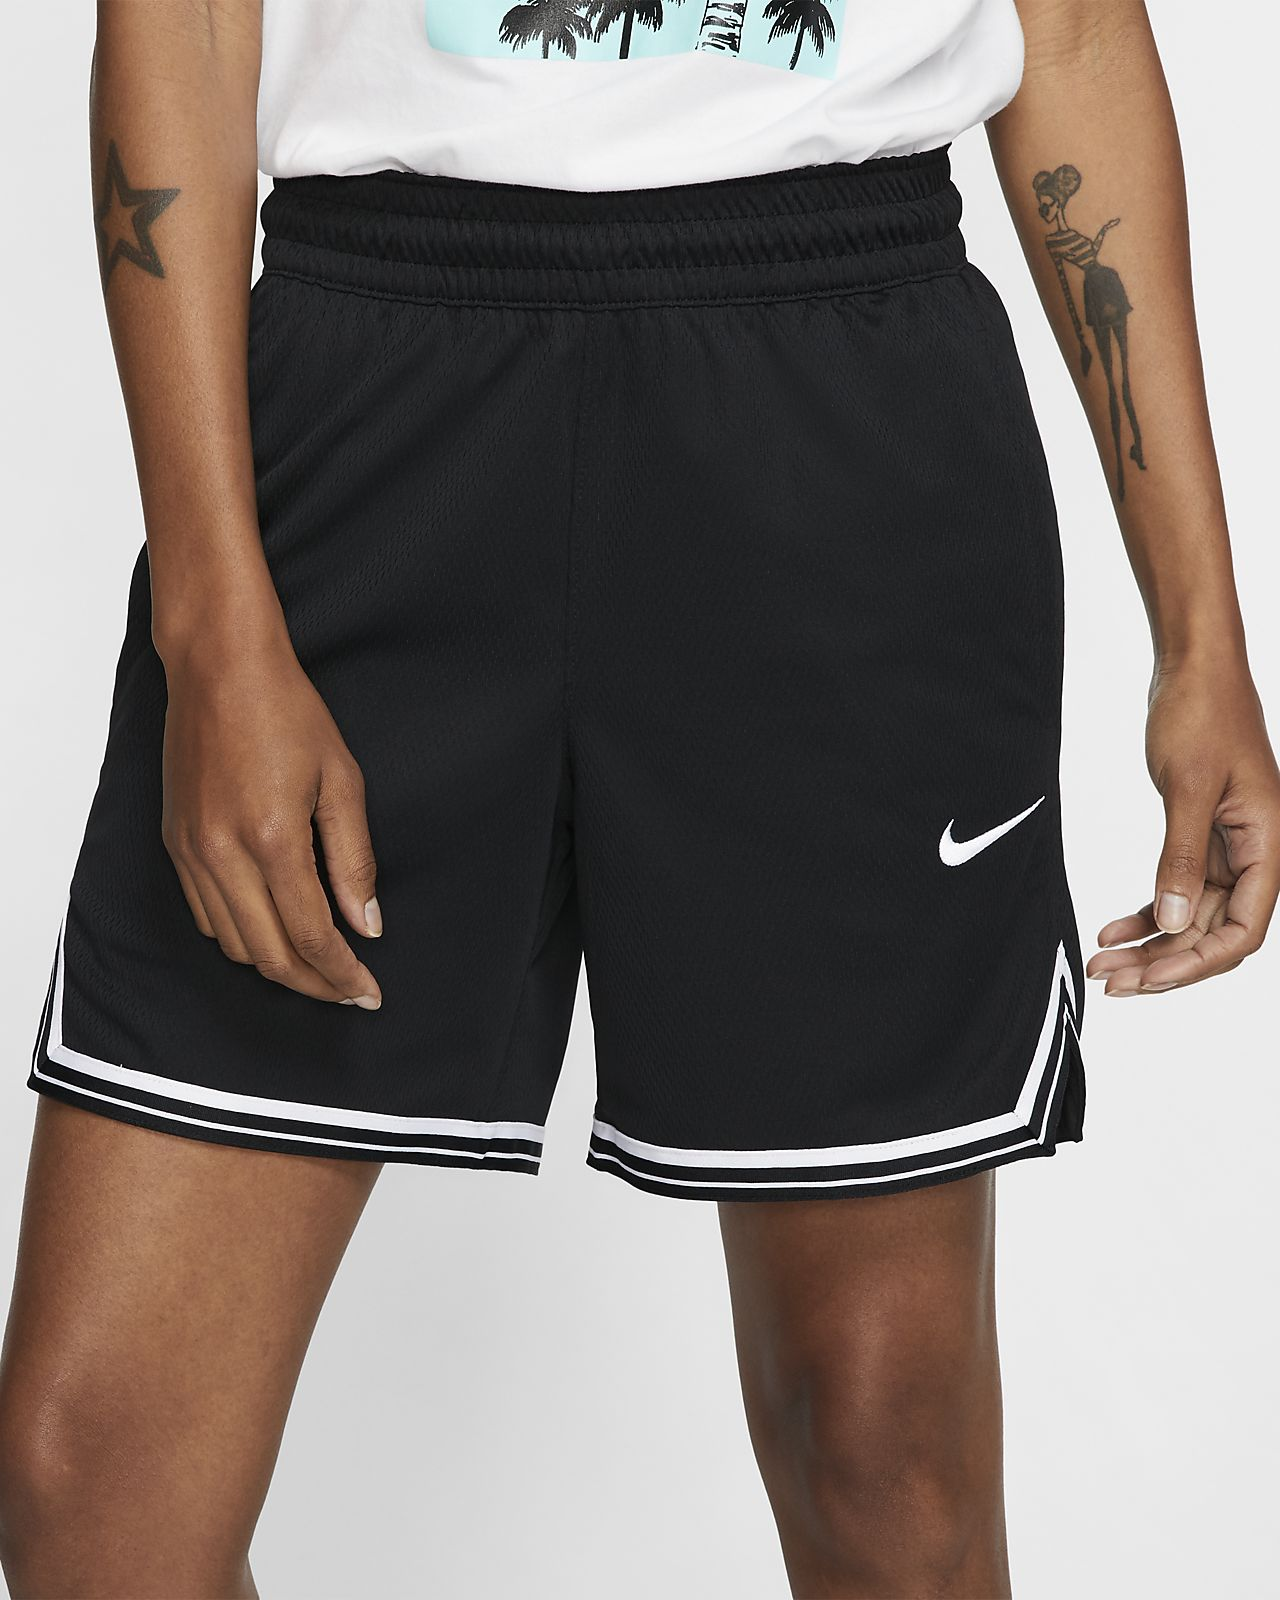 Nike Women's Basketball Shorts